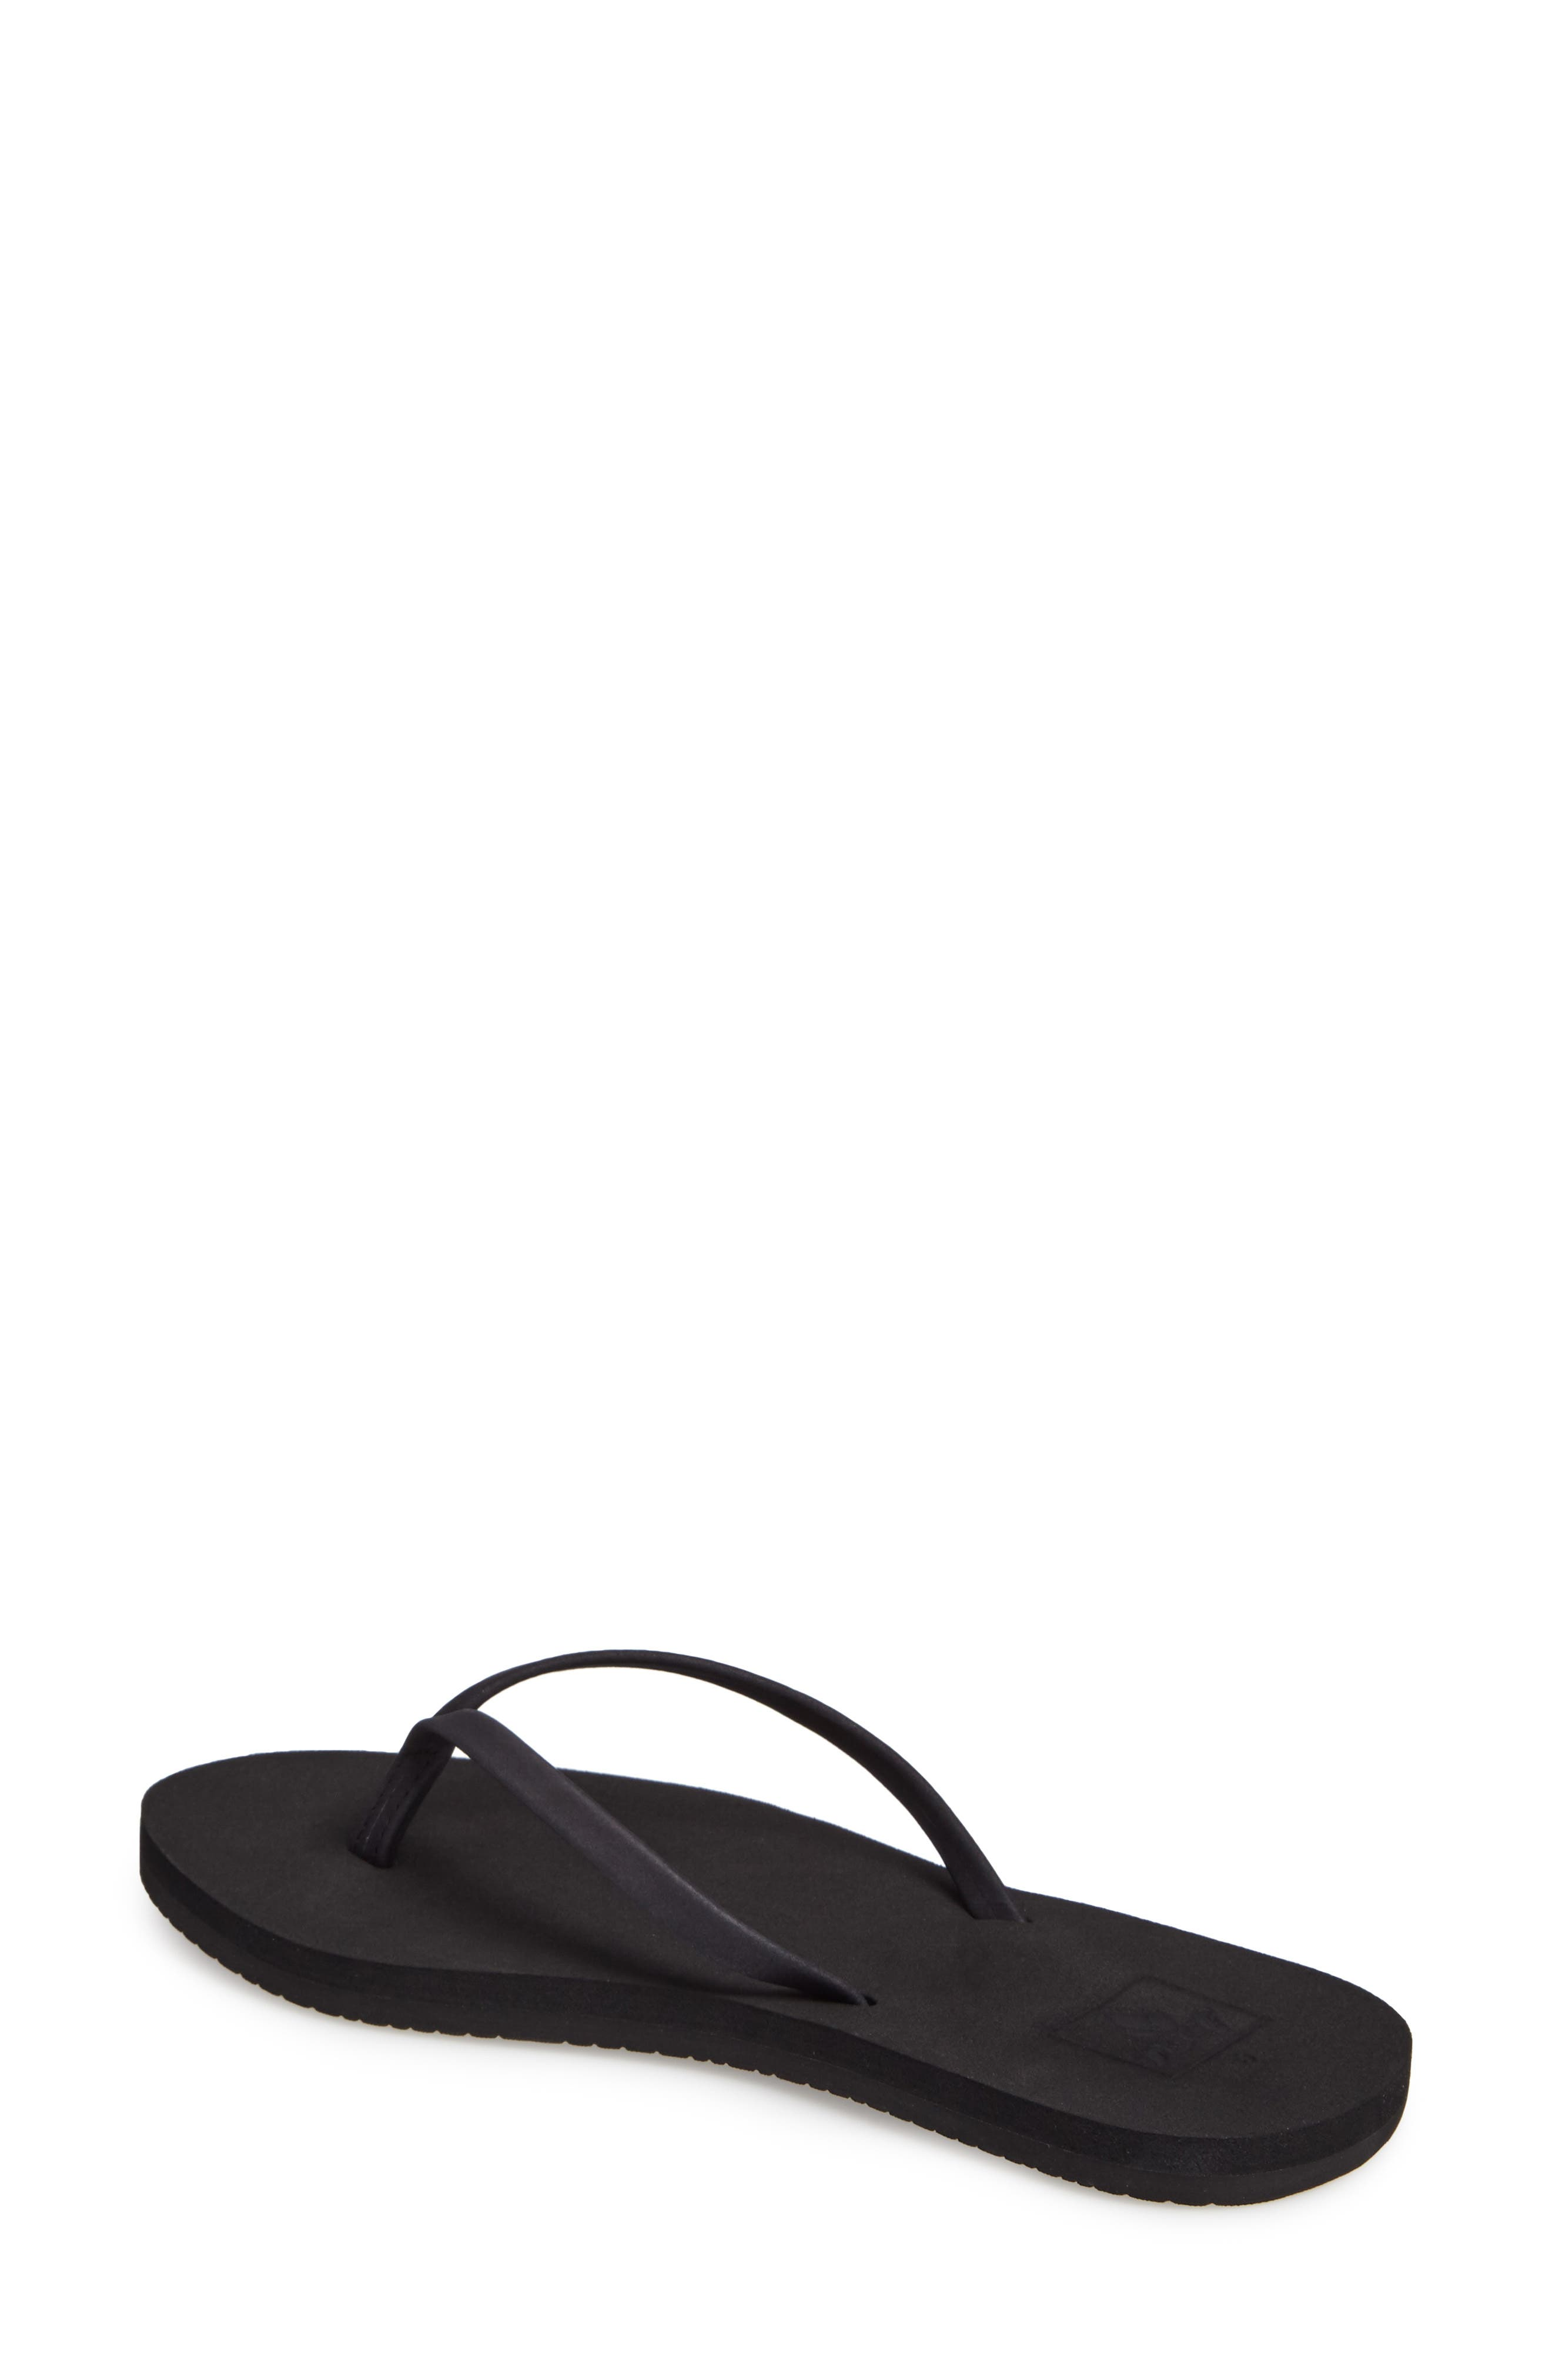 Bliss Nights Flip Flop,                             Alternate thumbnail 6, color,